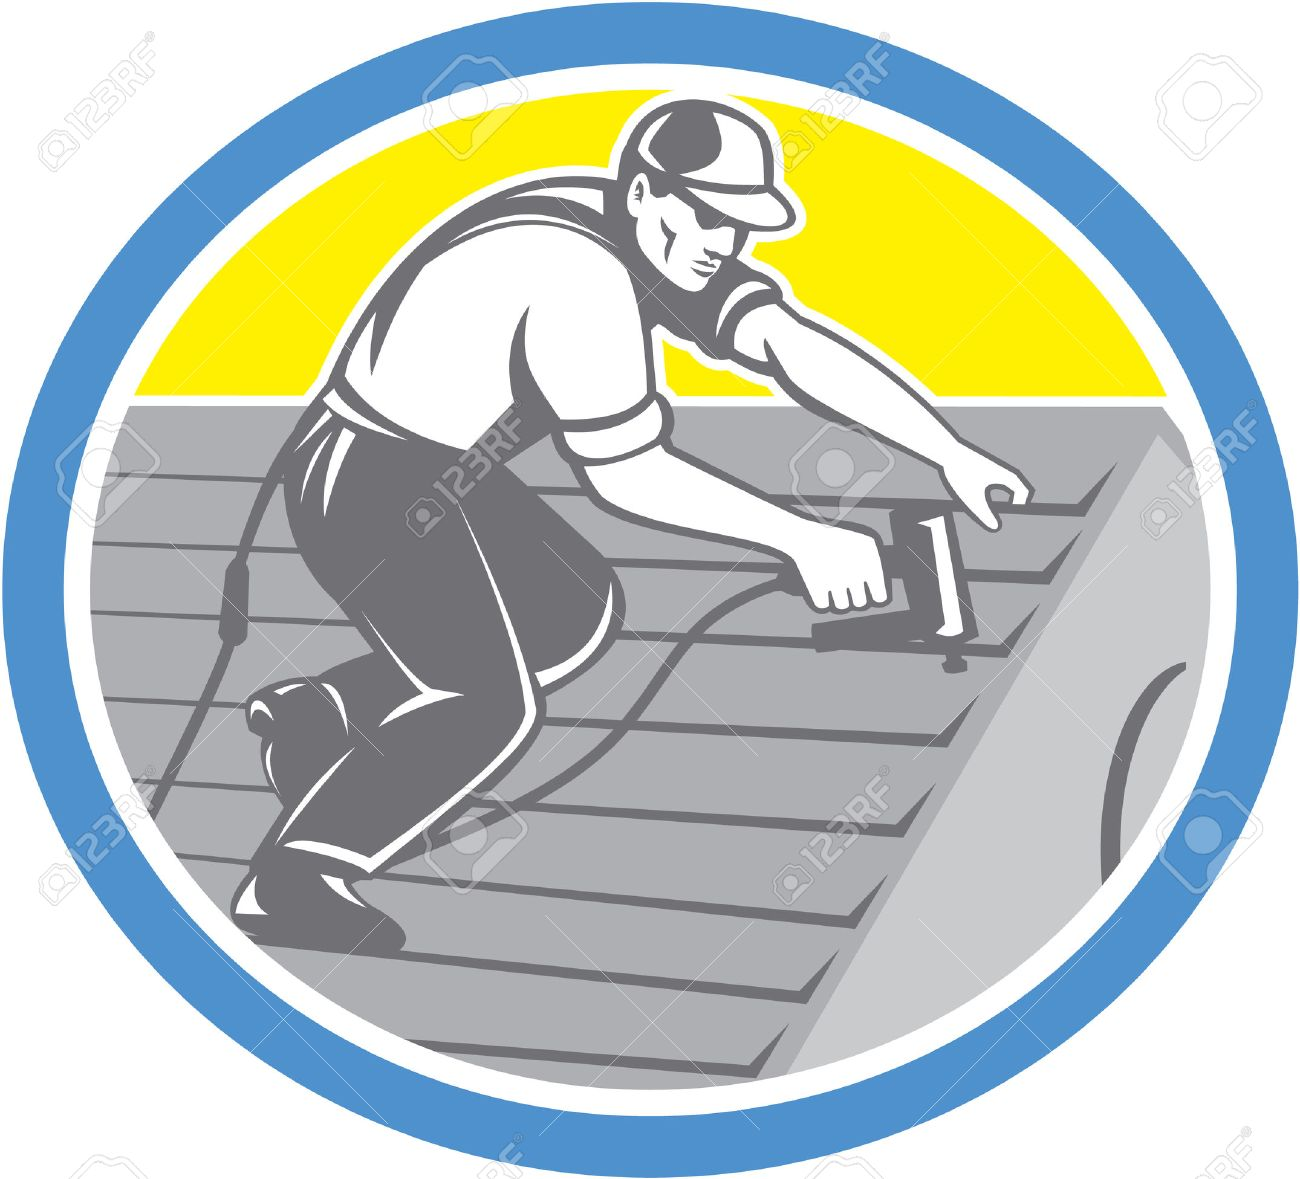 Illustration of a roofer construction worker roofing working on house roof with nail gun nailgun nailer set inside circle done in retro style. Stock Vector - 30391599